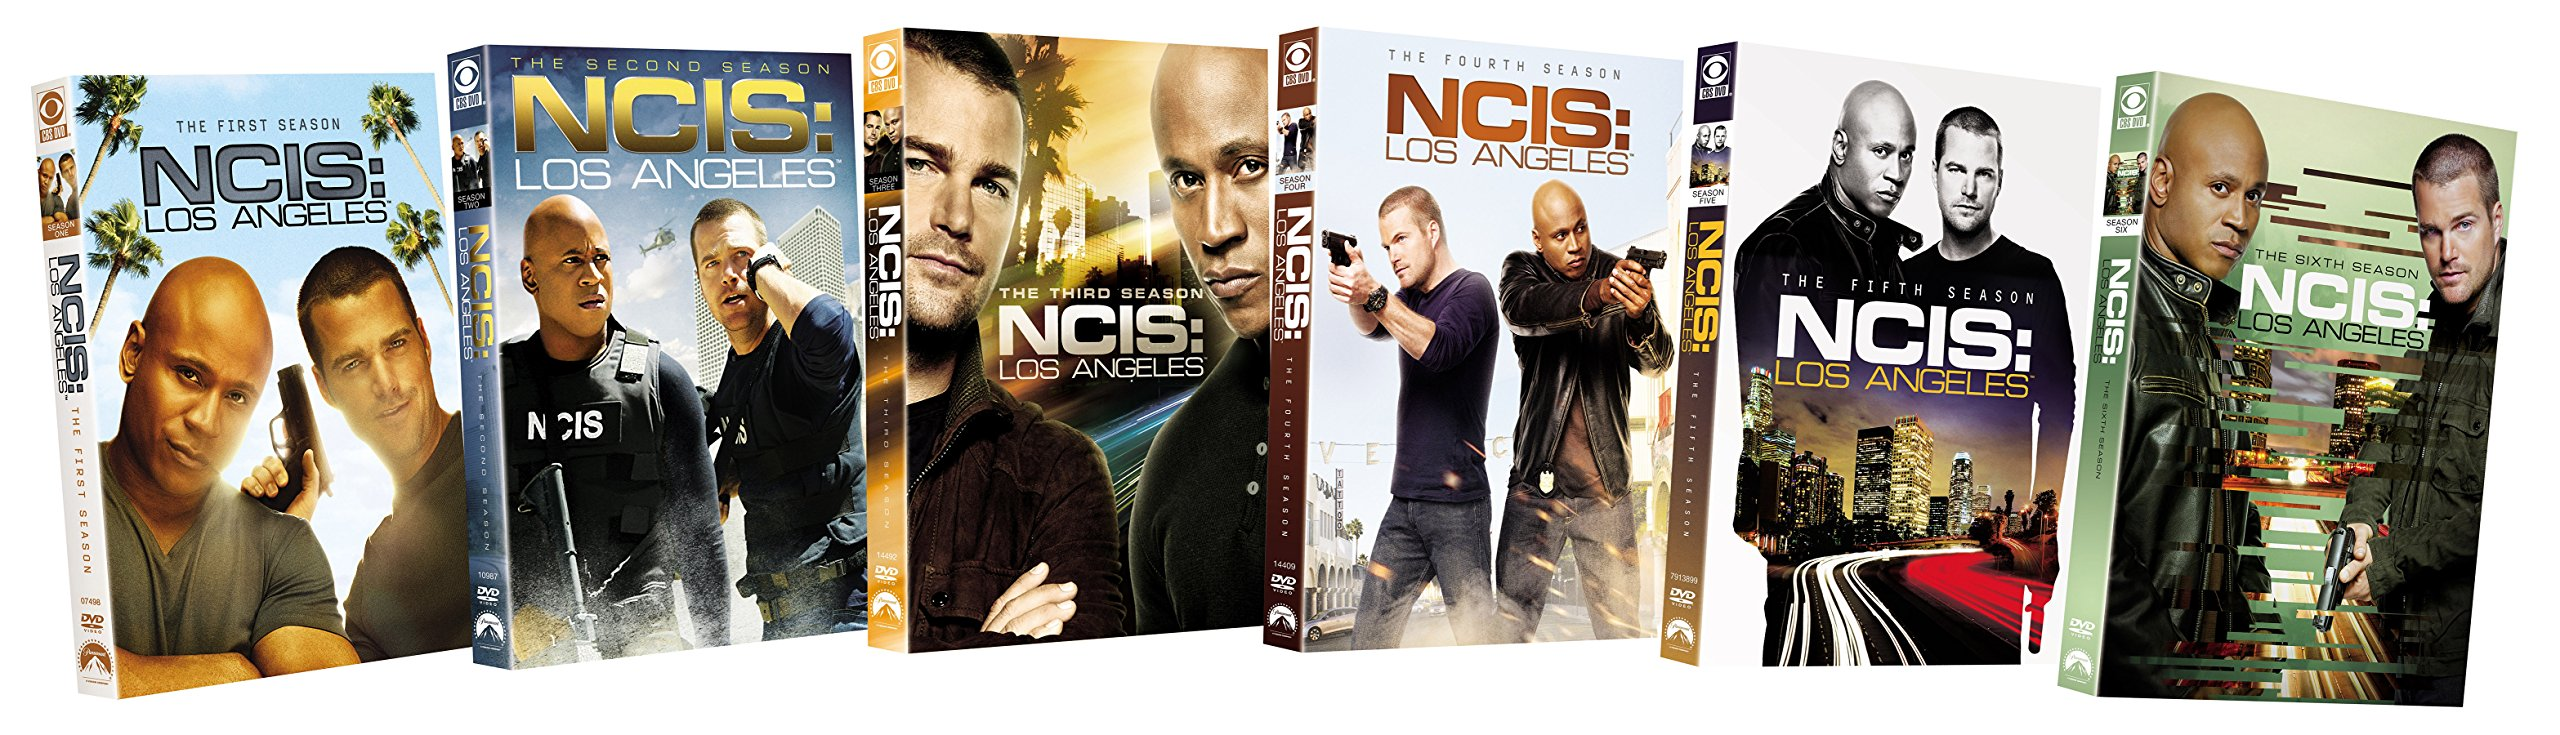 NCIS: Los Angeles: Six Season Pack by Paramount